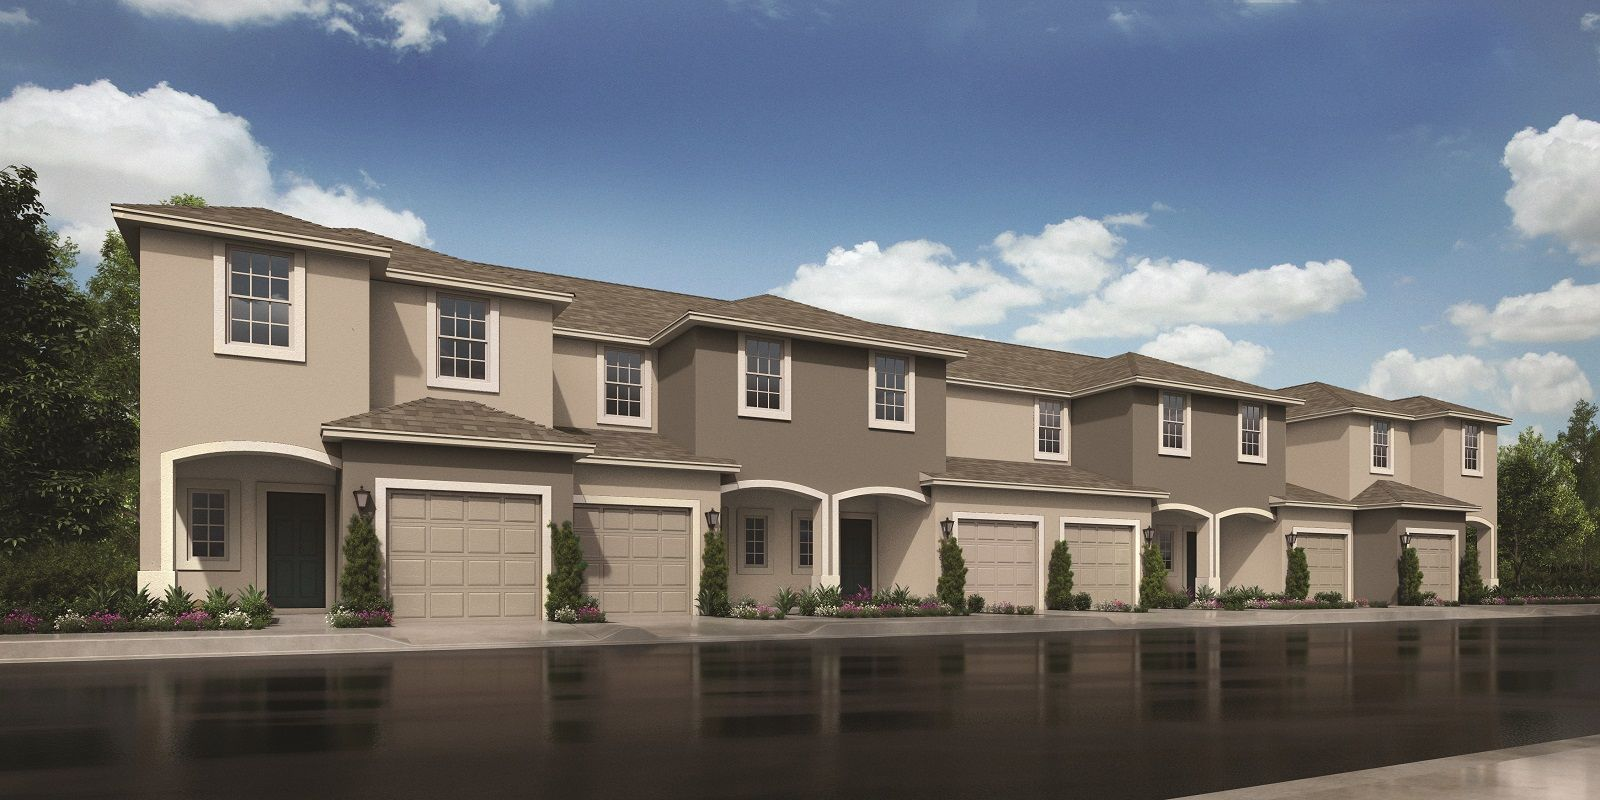 Row of 6 two-story townhomes with single car...